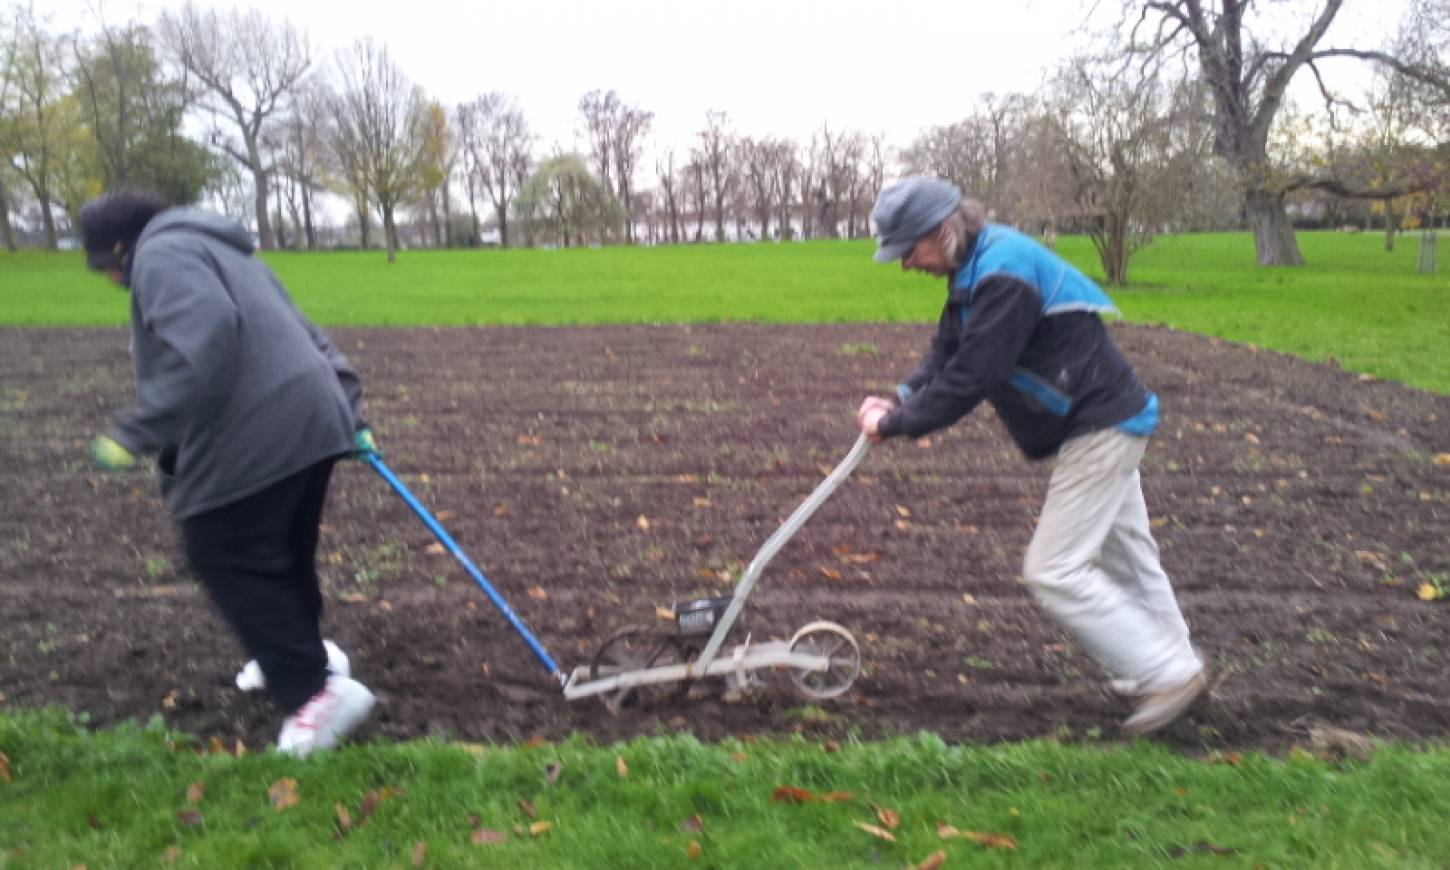 Day 1 sowing on Ruskin Park, 'the Wheats Field', the drill in action, pics <a href='http://www.brockwellgreenhouses.org.uk/welcome/' target=_blank>Ann Bodkin</a> - 2:41pm&nbsp;28<sup>th</sup>&nbsp;Nov.&nbsp;'15